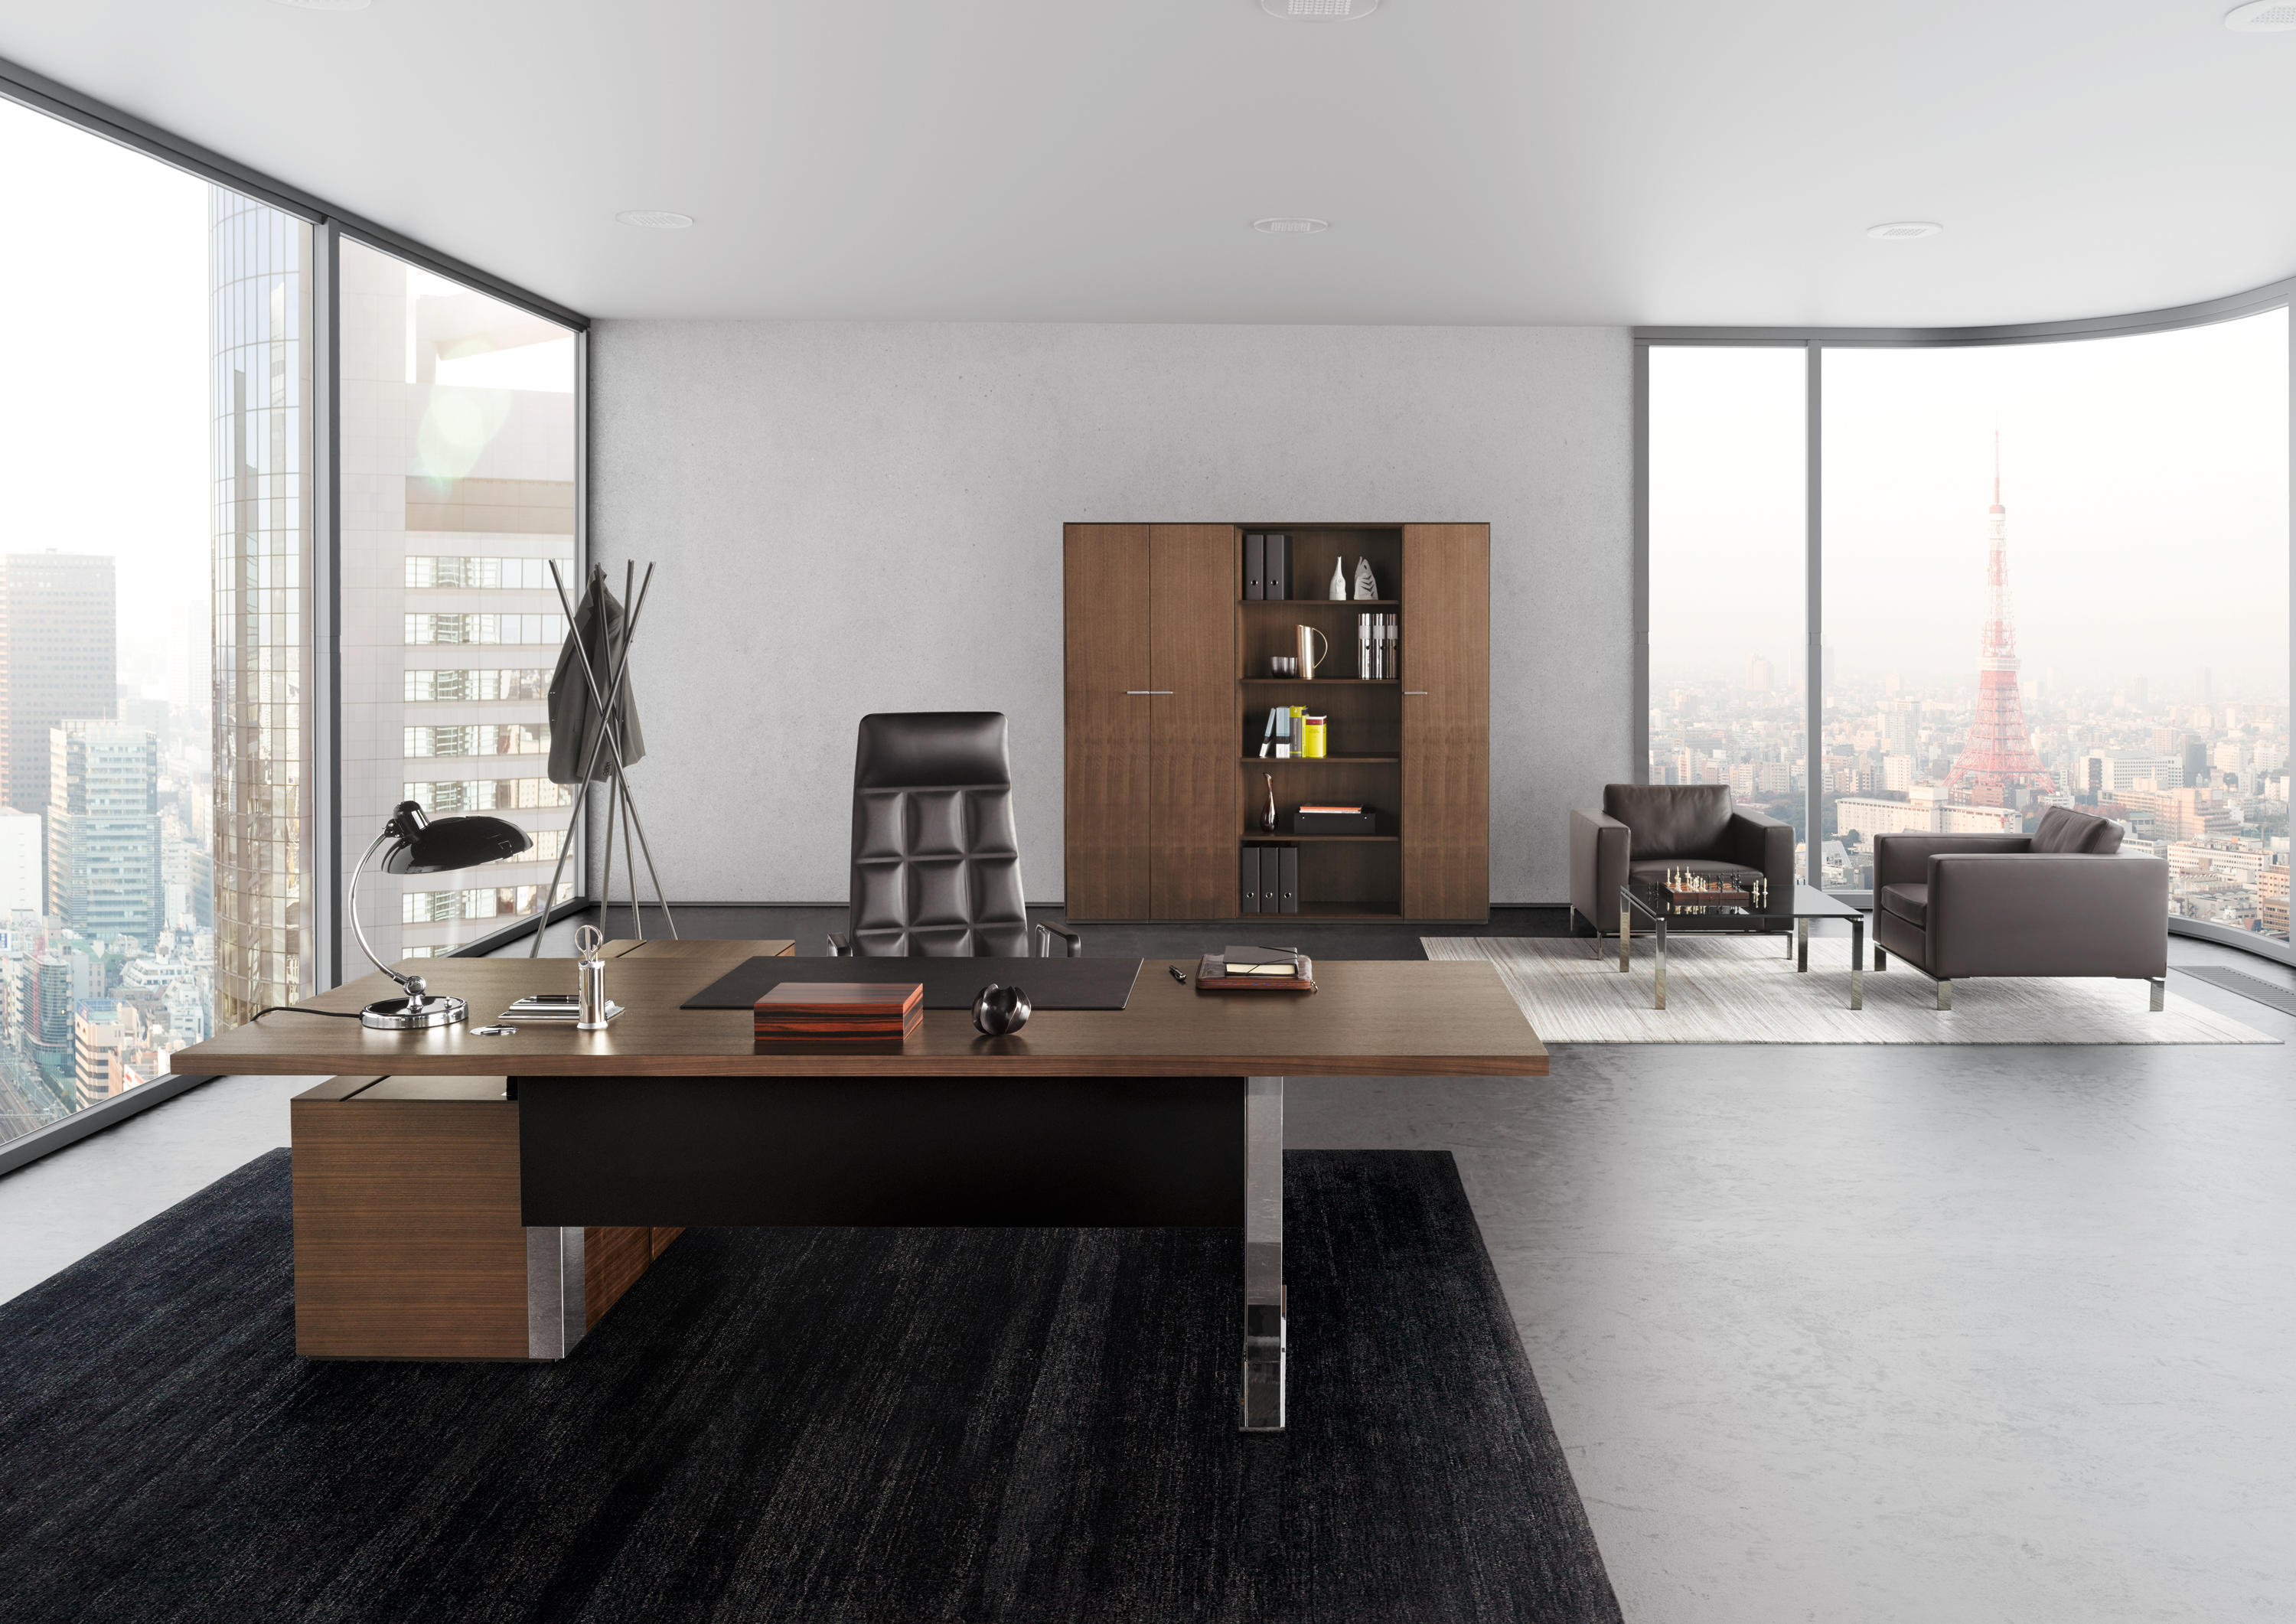 exec v table executive desks from walter knoll architonic. Black Bedroom Furniture Sets. Home Design Ideas